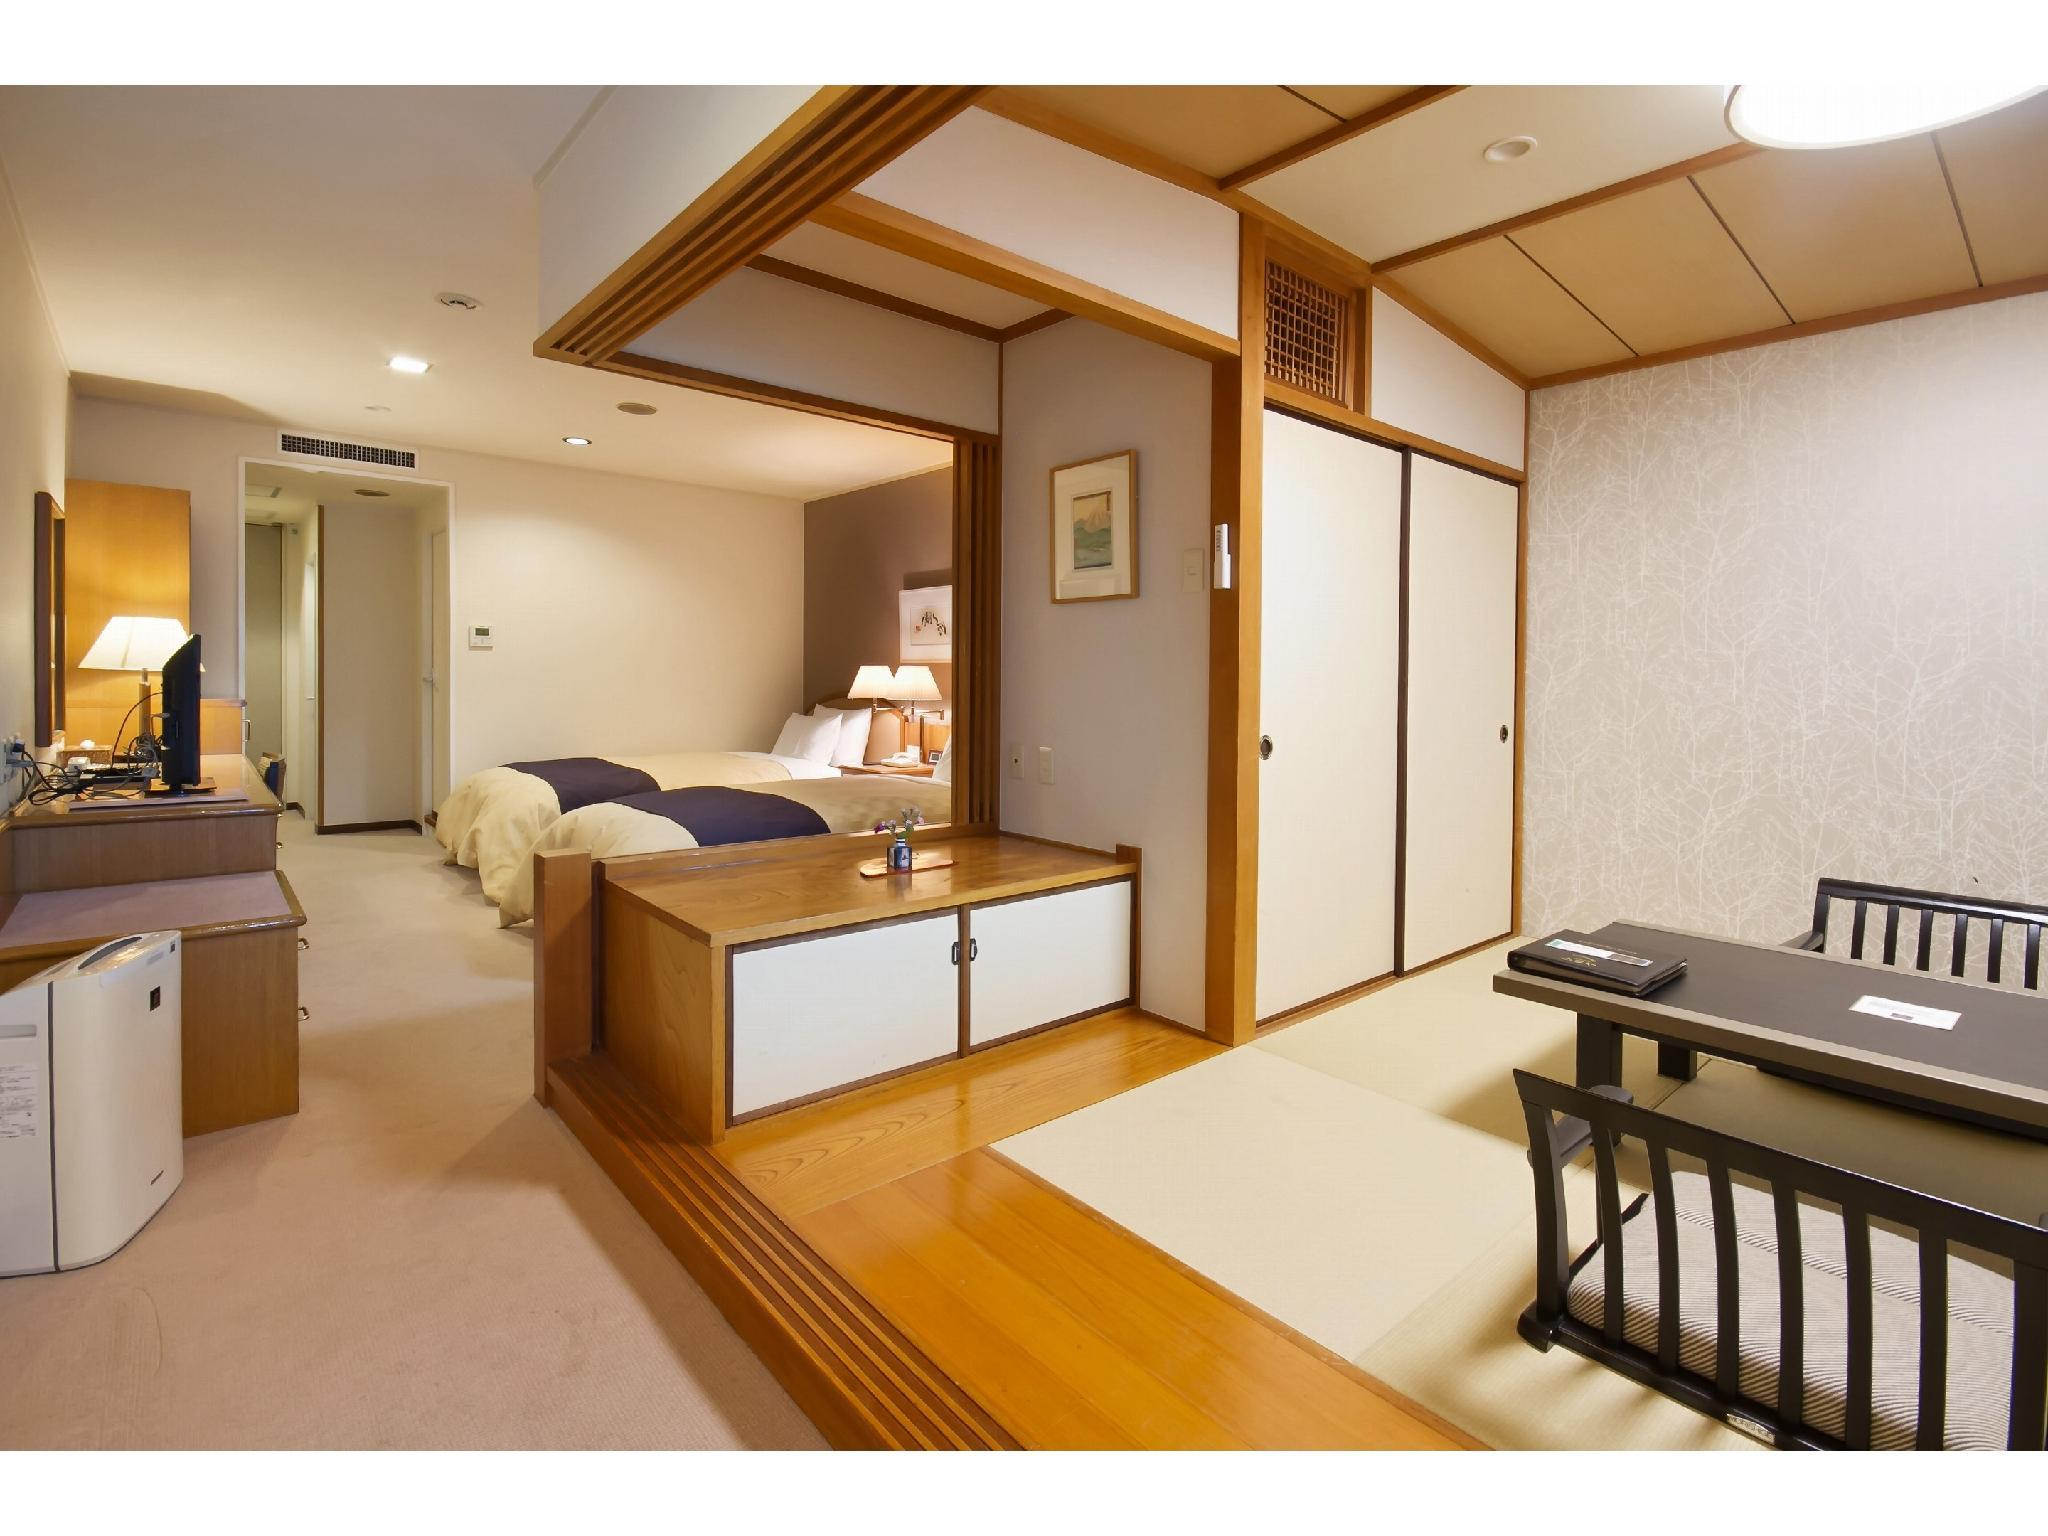 南館 和洋式房(2張床) (Japanese/Western-style Room (2 Beds, South Wing))